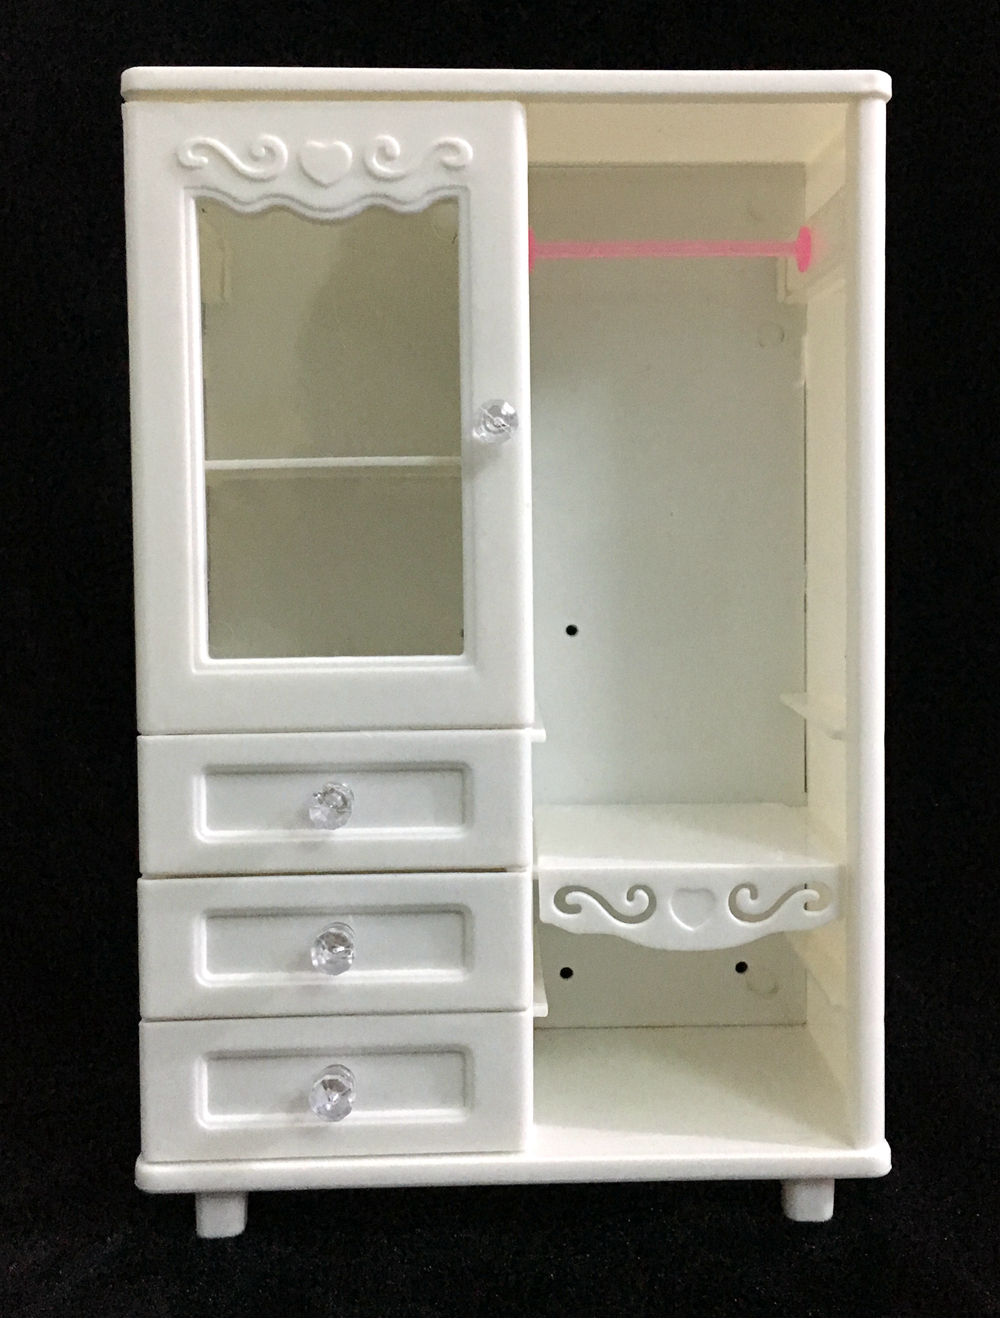 NK One Set Doll Accessories White Wardrobe Closet For Barbie Doll Princess Dreamhouse Furniture Miniature Best Gift For Child